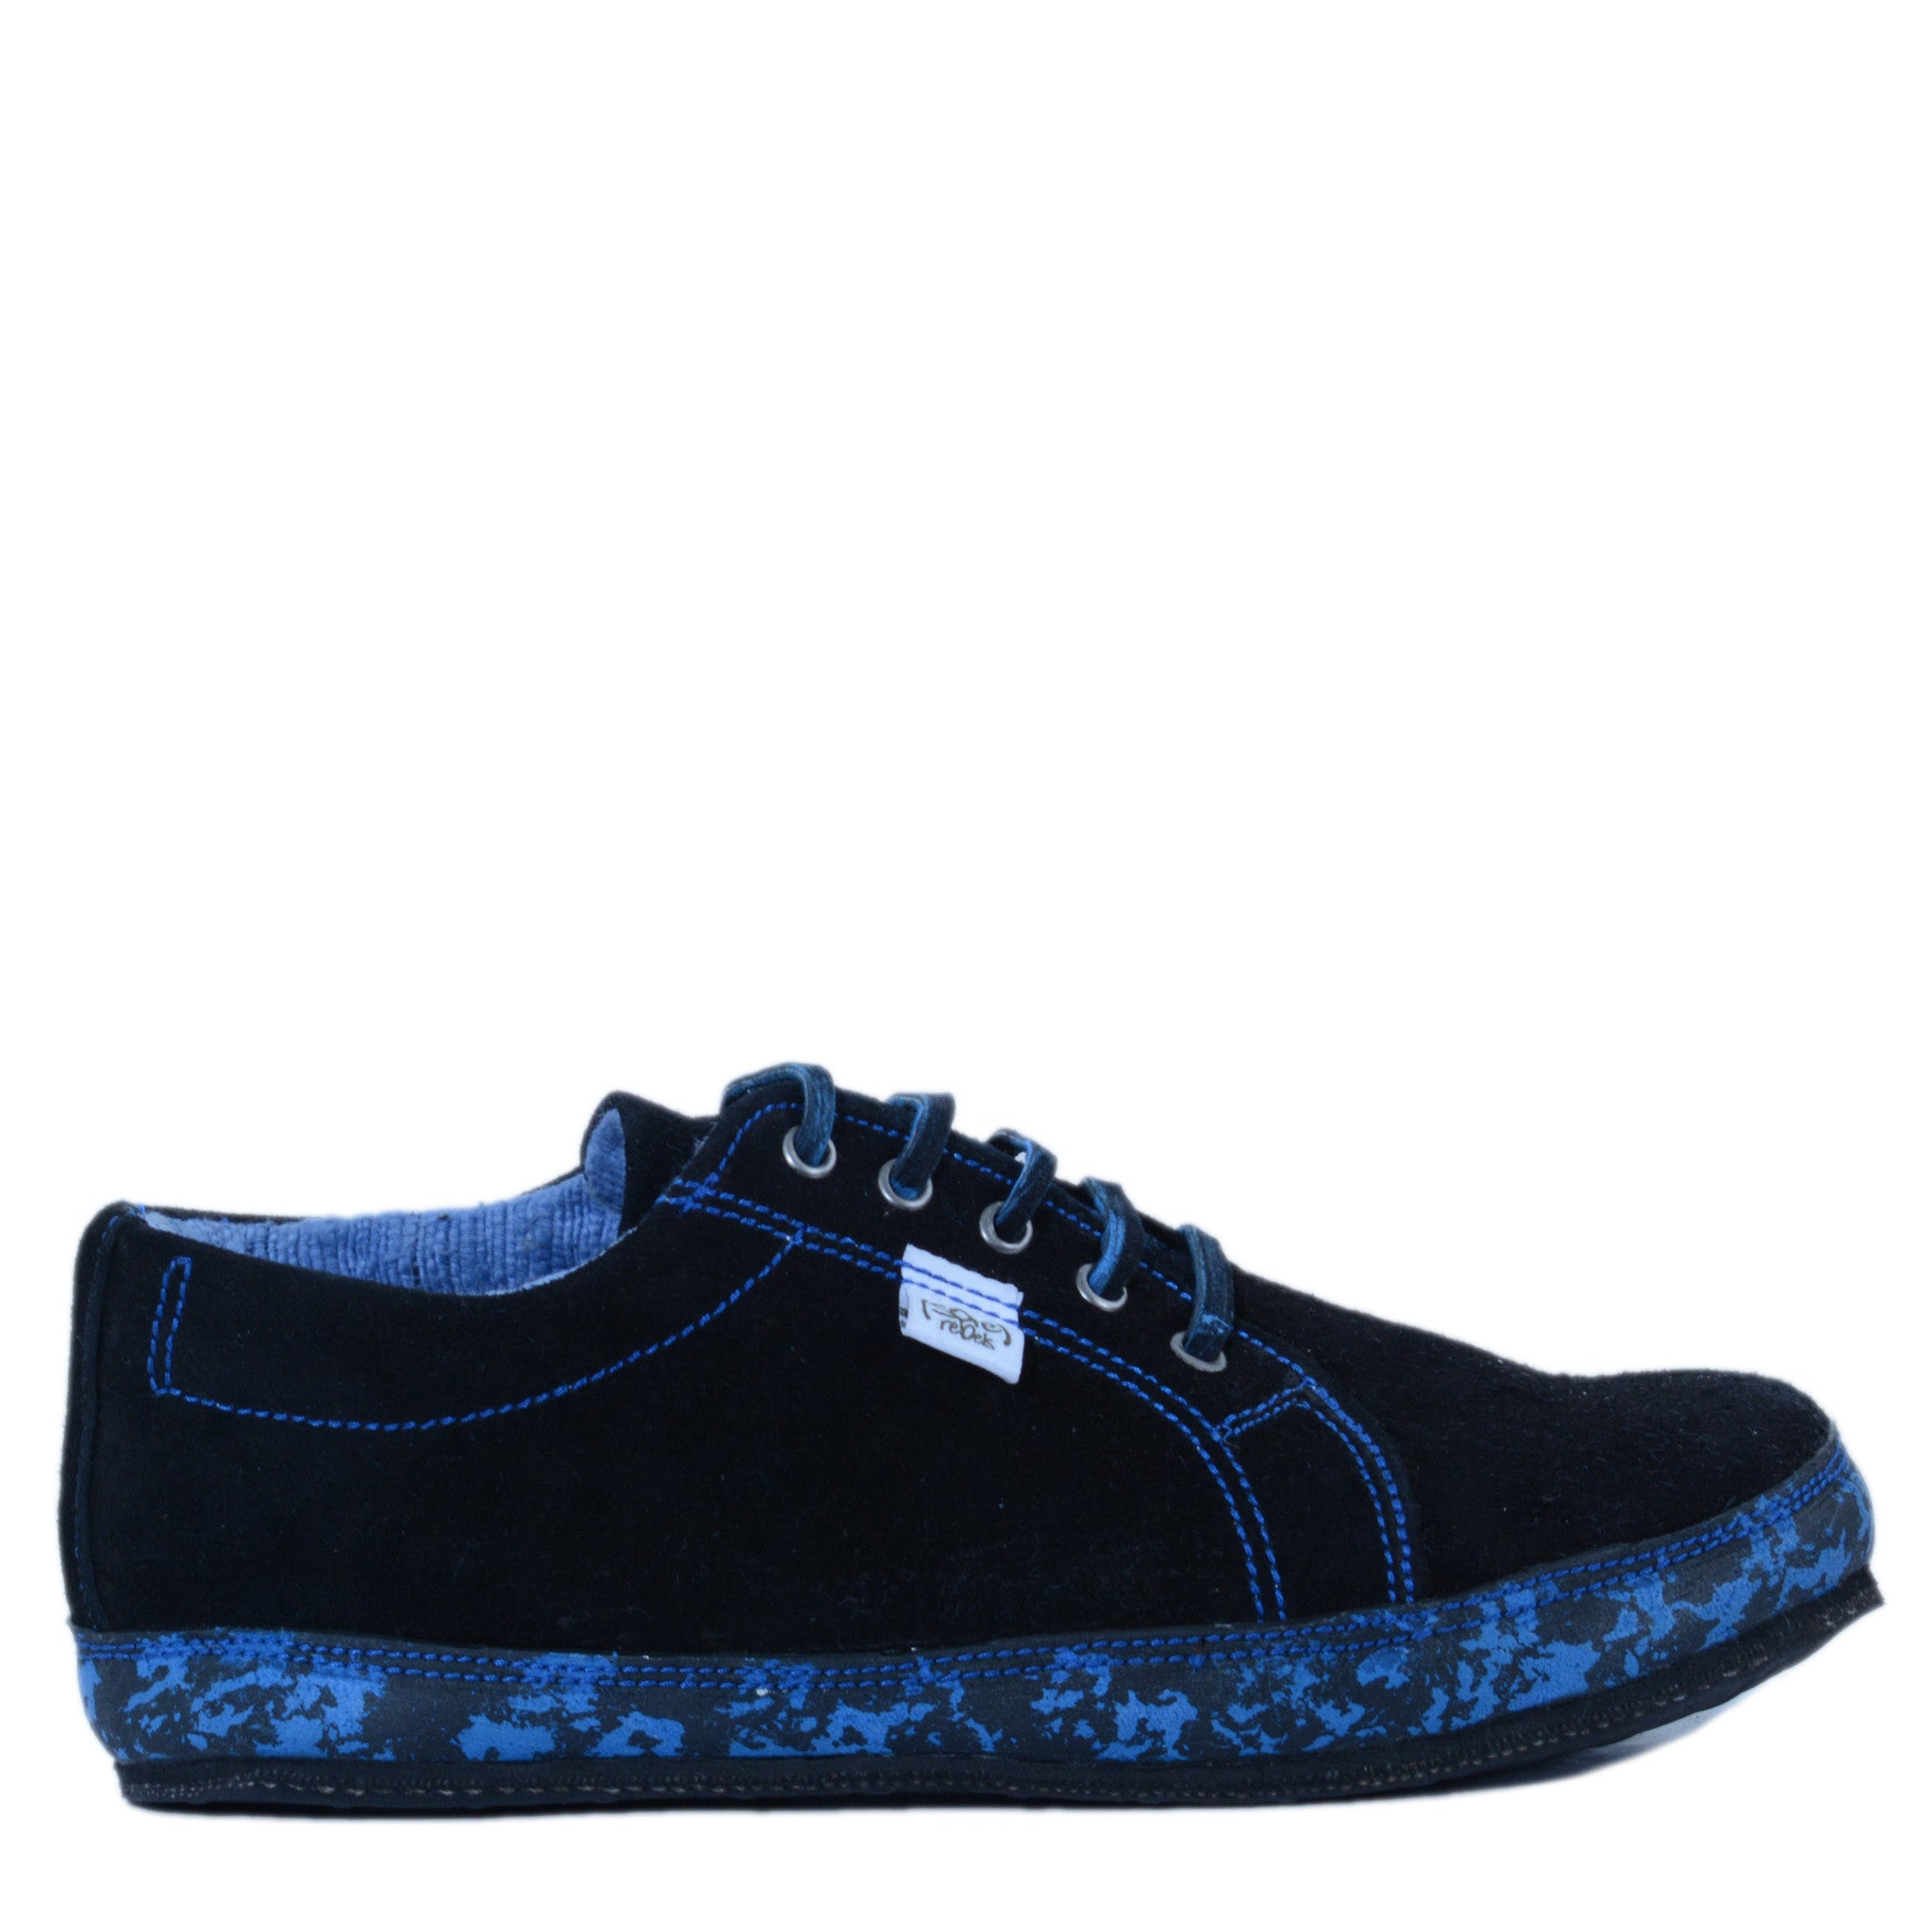 solerebels Blue urban runner JP Lace-Ups